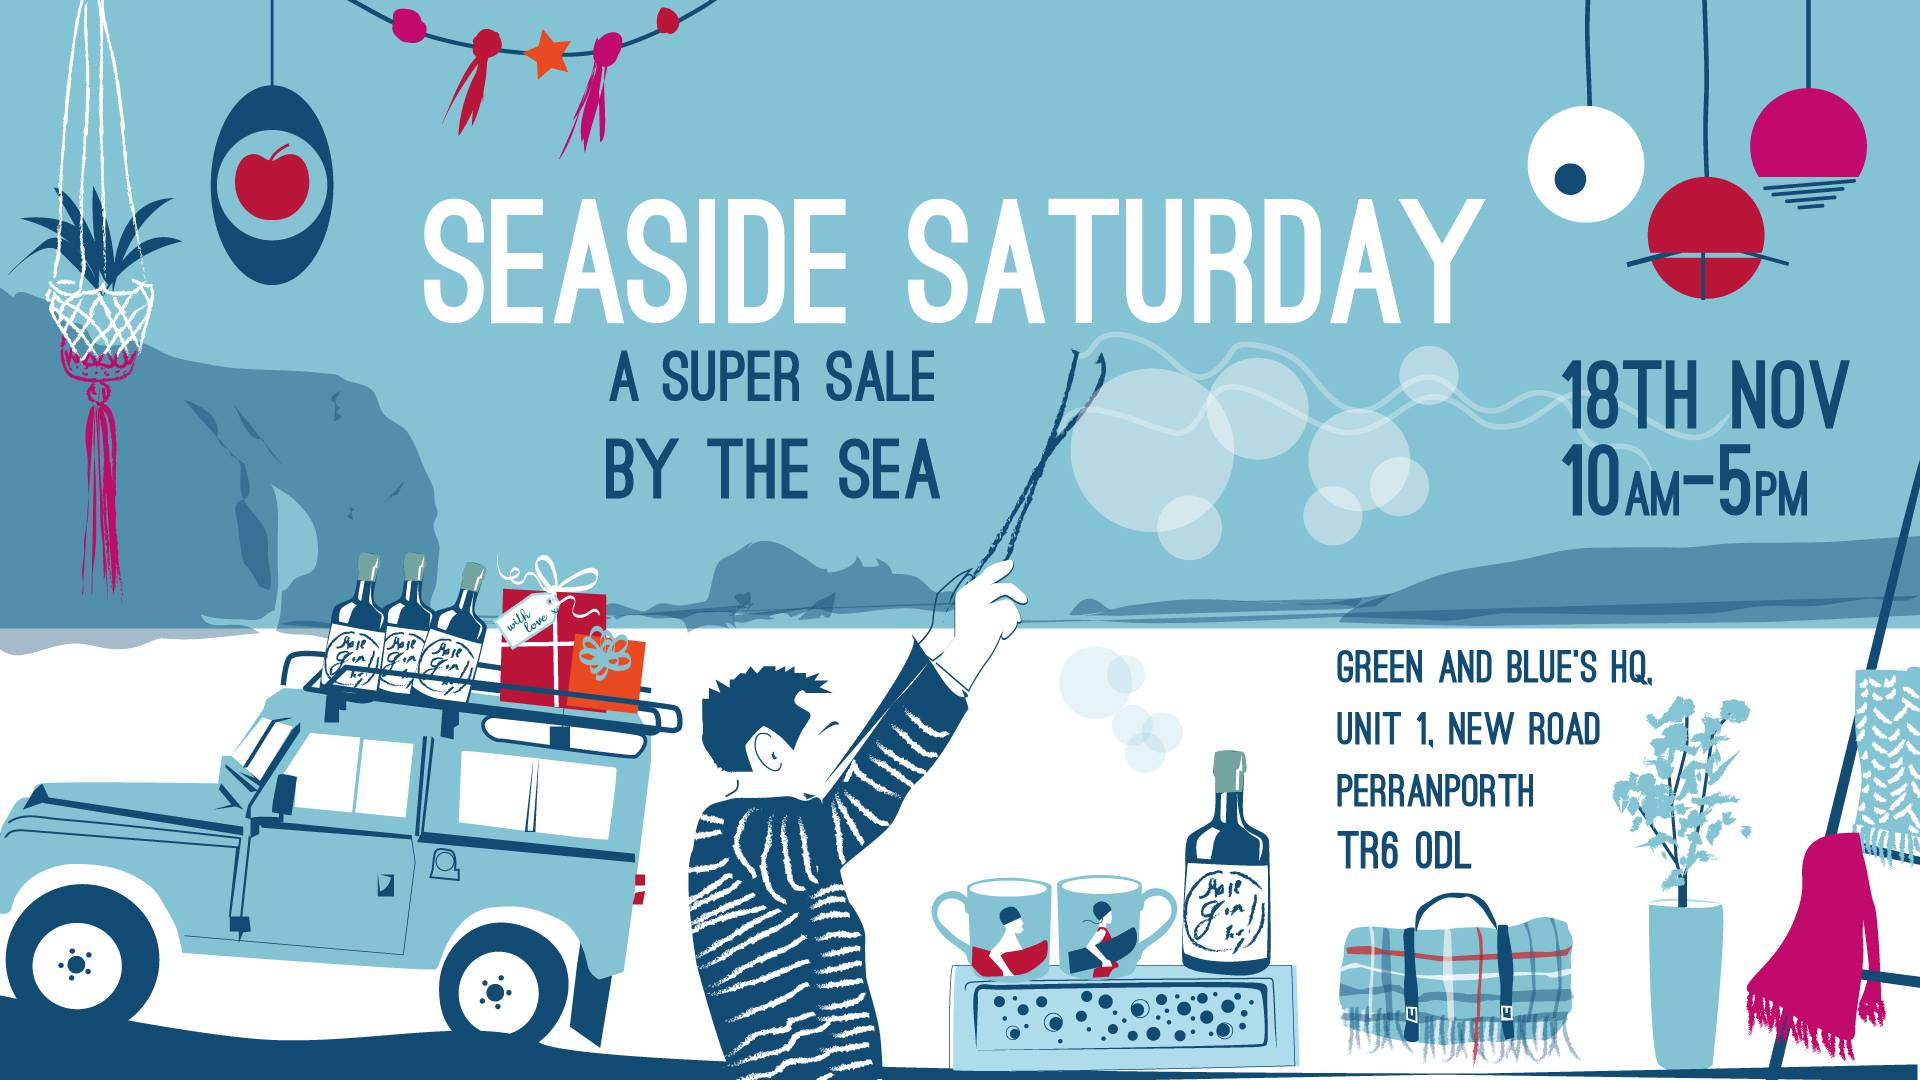 What's On in Cornwall: Seaside Saturday Sale, Perranporth